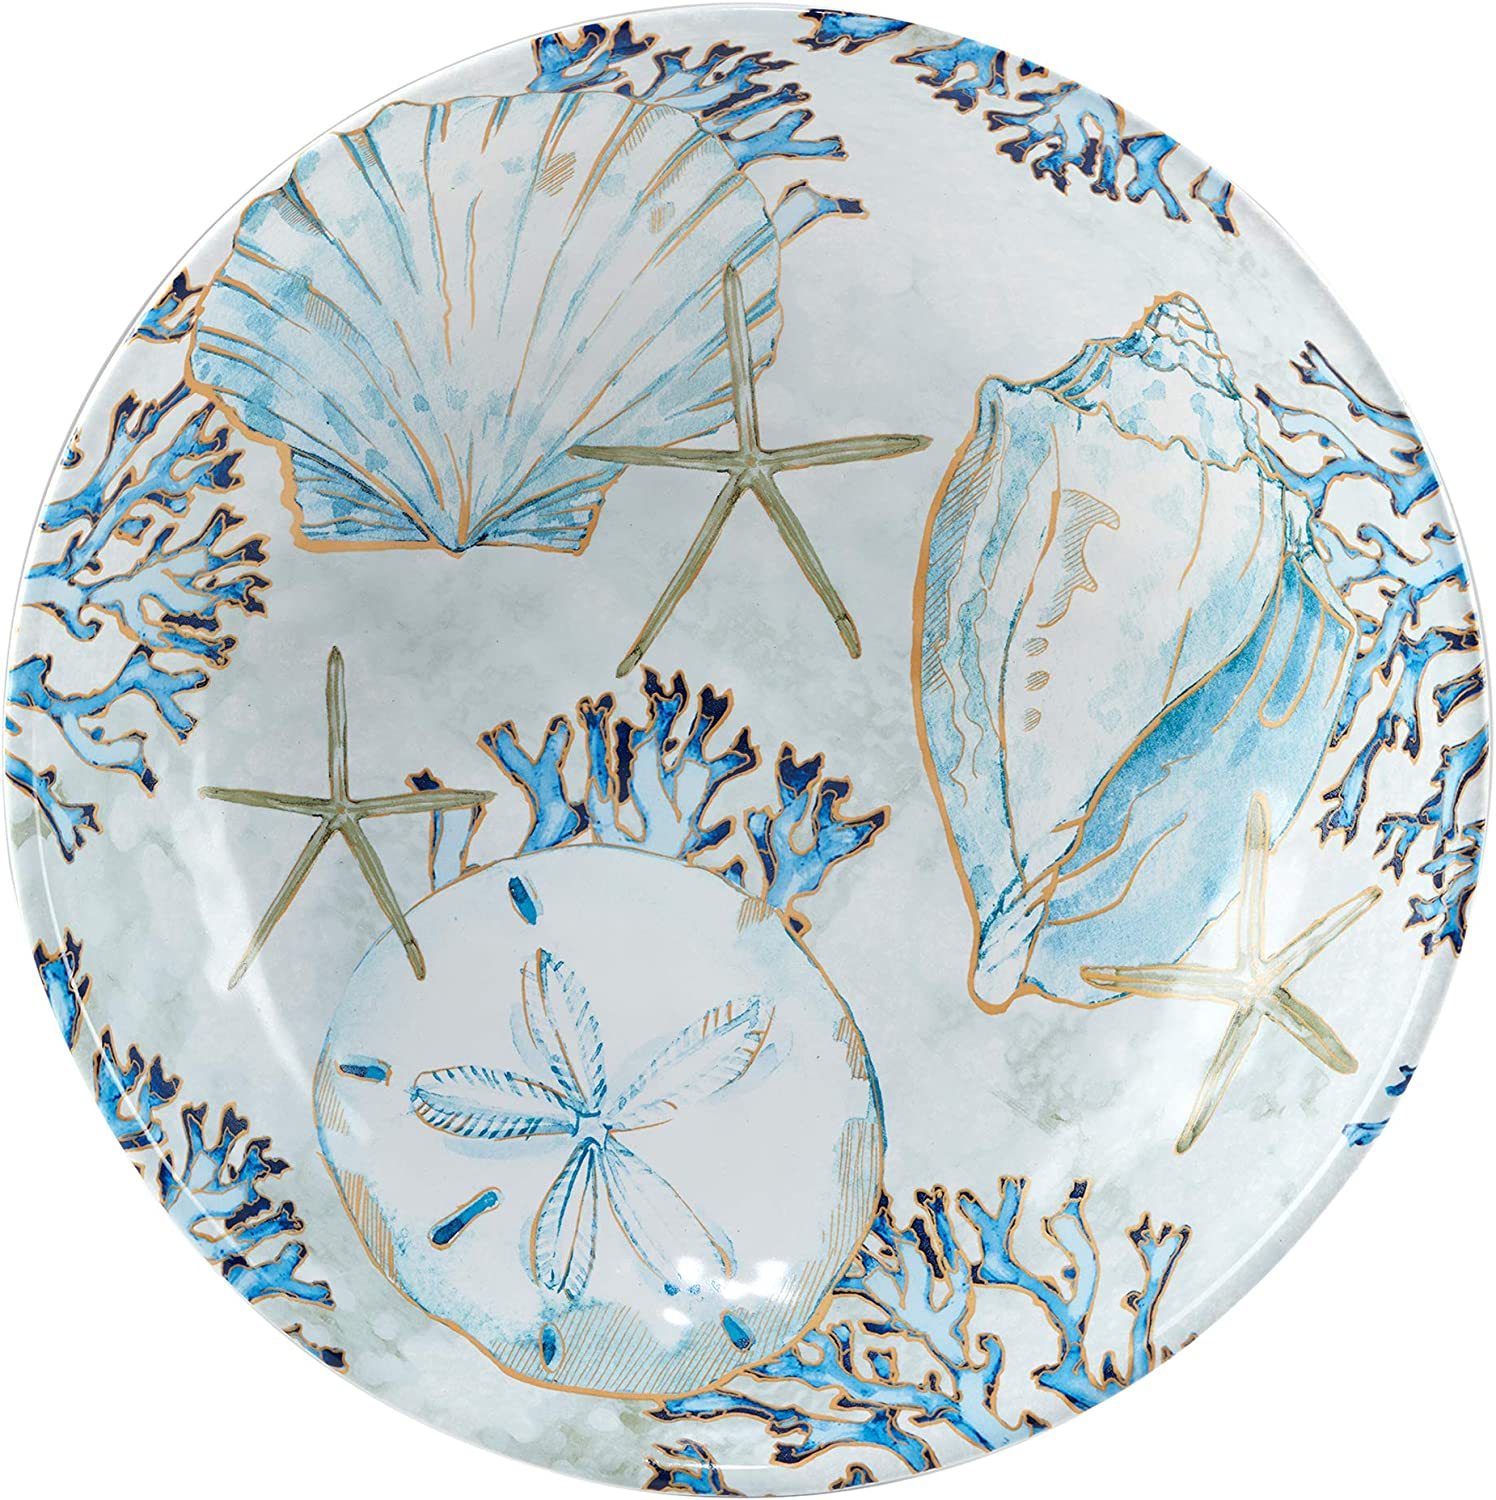 Certified International Challenge Max 75% OFF the lowest price Playa Shells oz Serving 144 Bowl